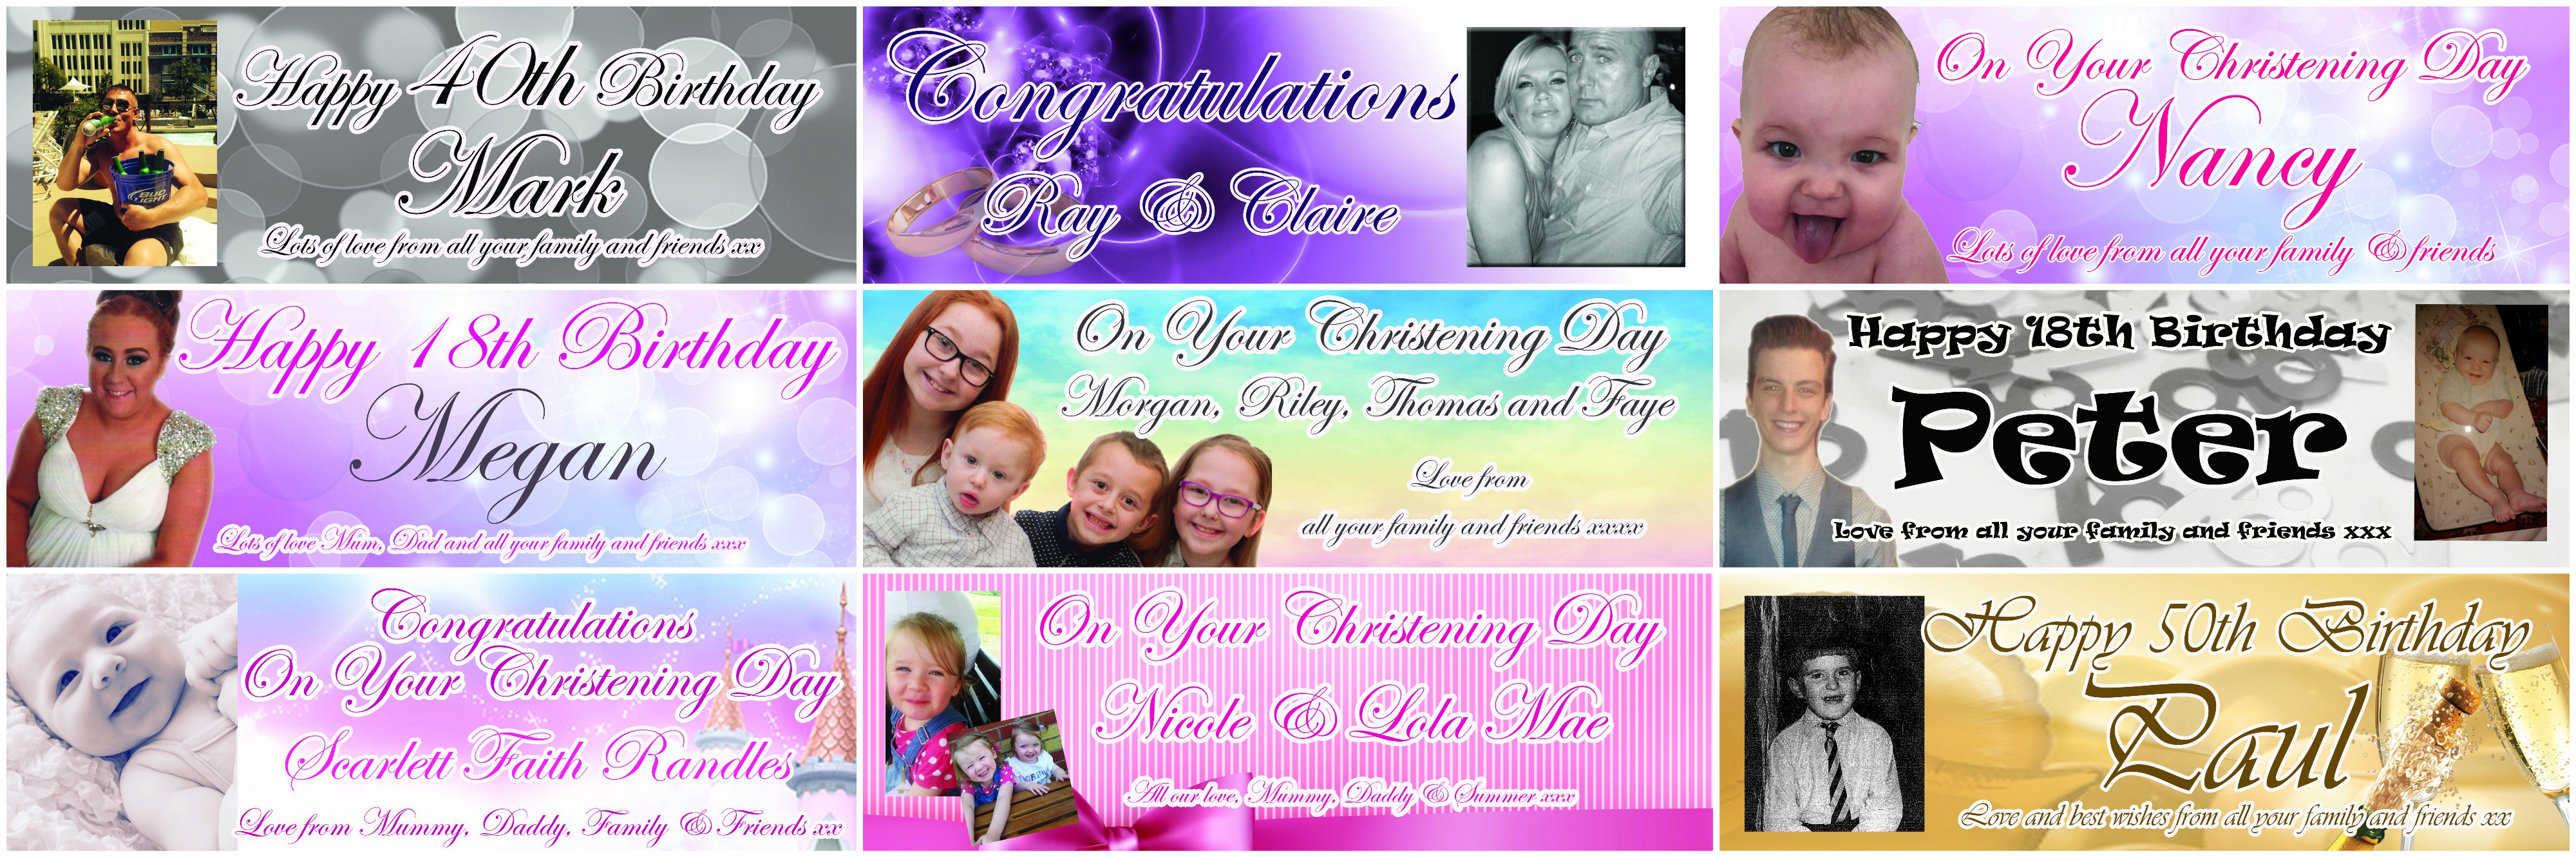 personalised photo birthday banners uk ; banner-collage-4